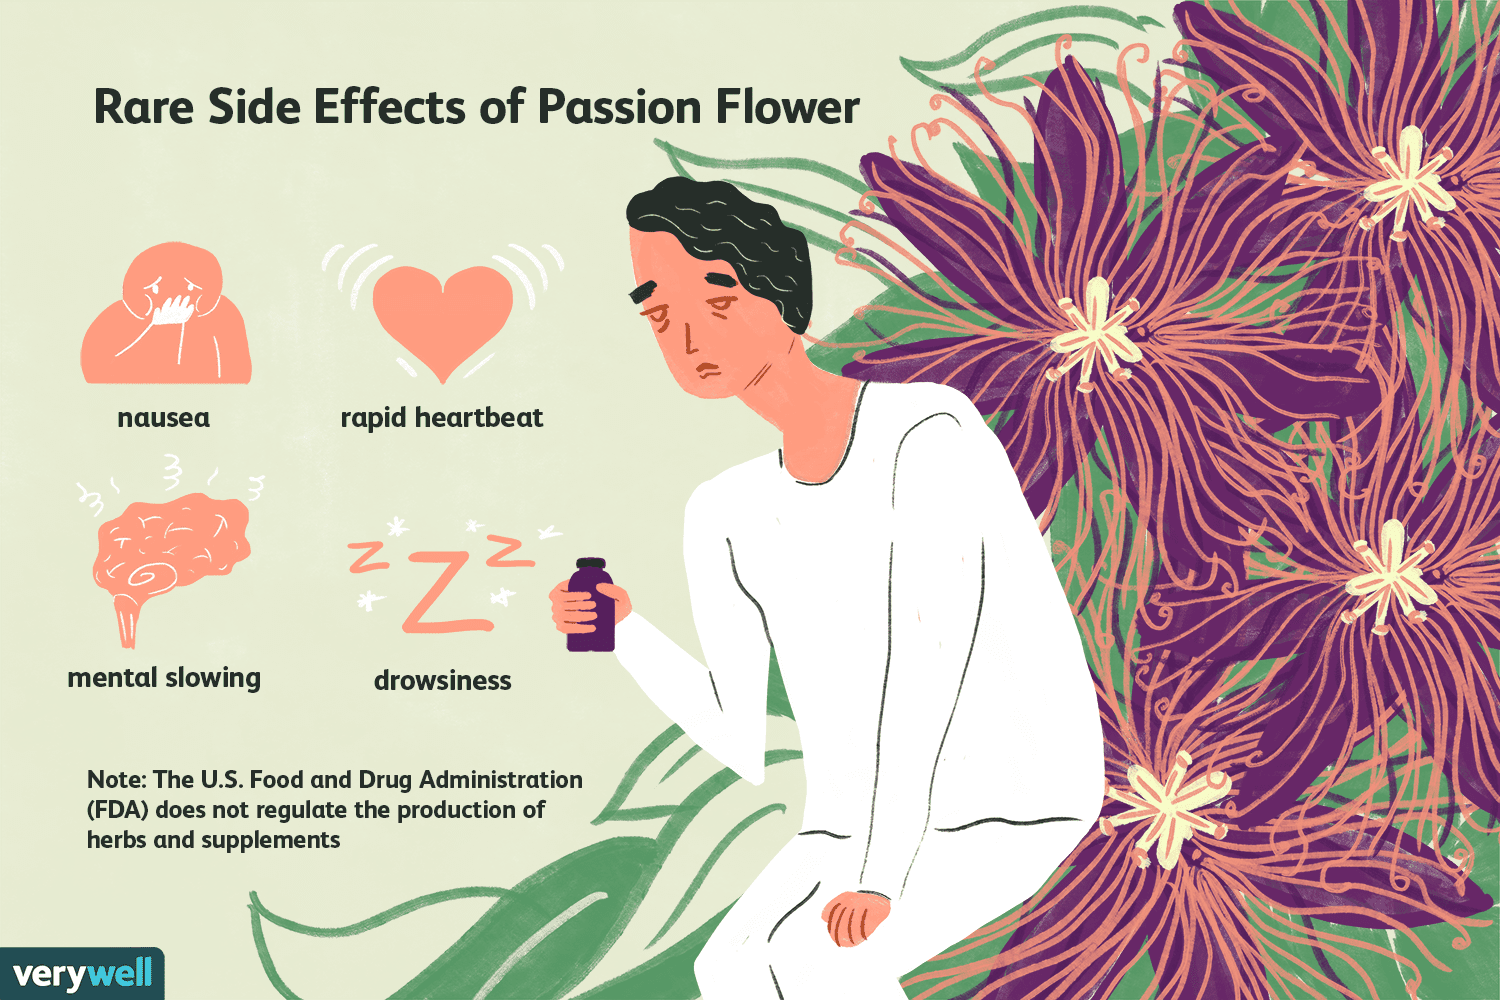 Side effects of Passion Flower